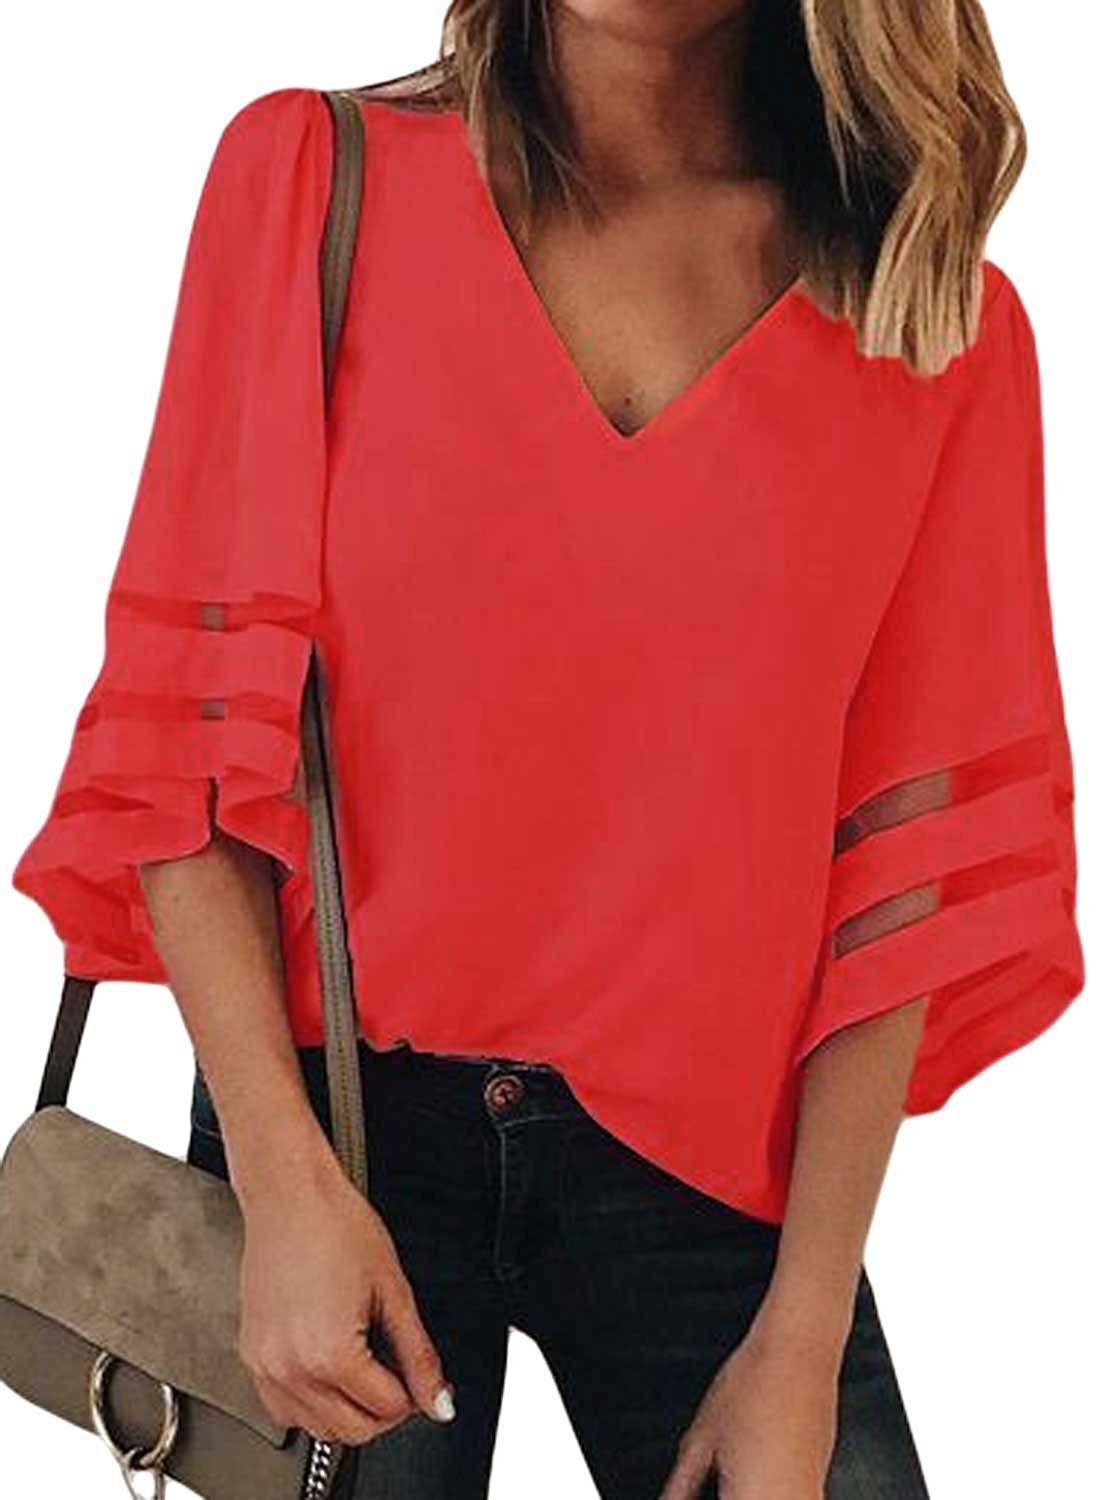 Allumk Womens 3/4 Bell Sleeve V Neck Lace Patchwork Chiffon Blouse Casual Loose Shirt Tops